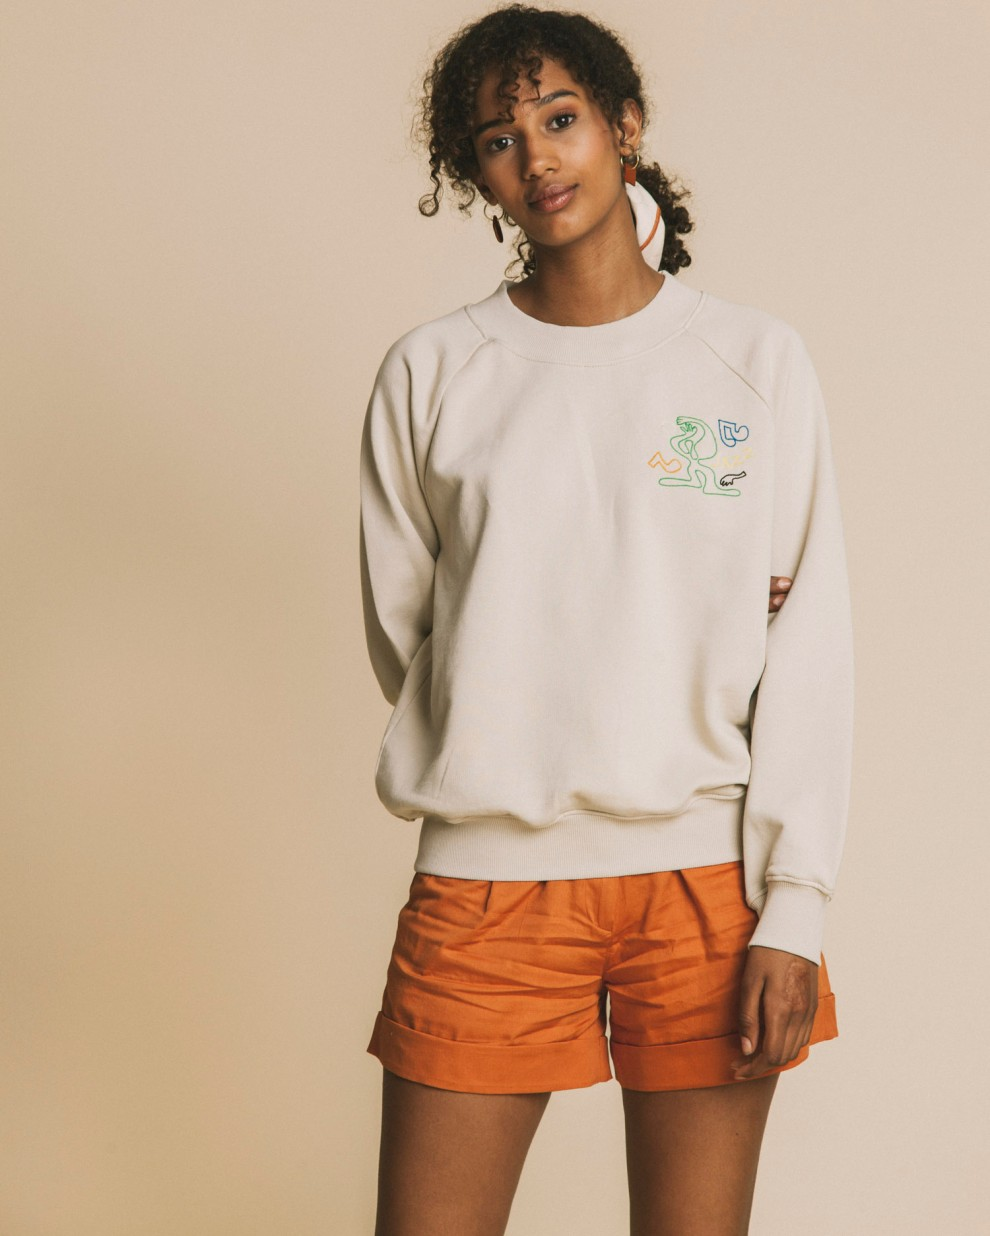 Jazz embroidered sweatshirt